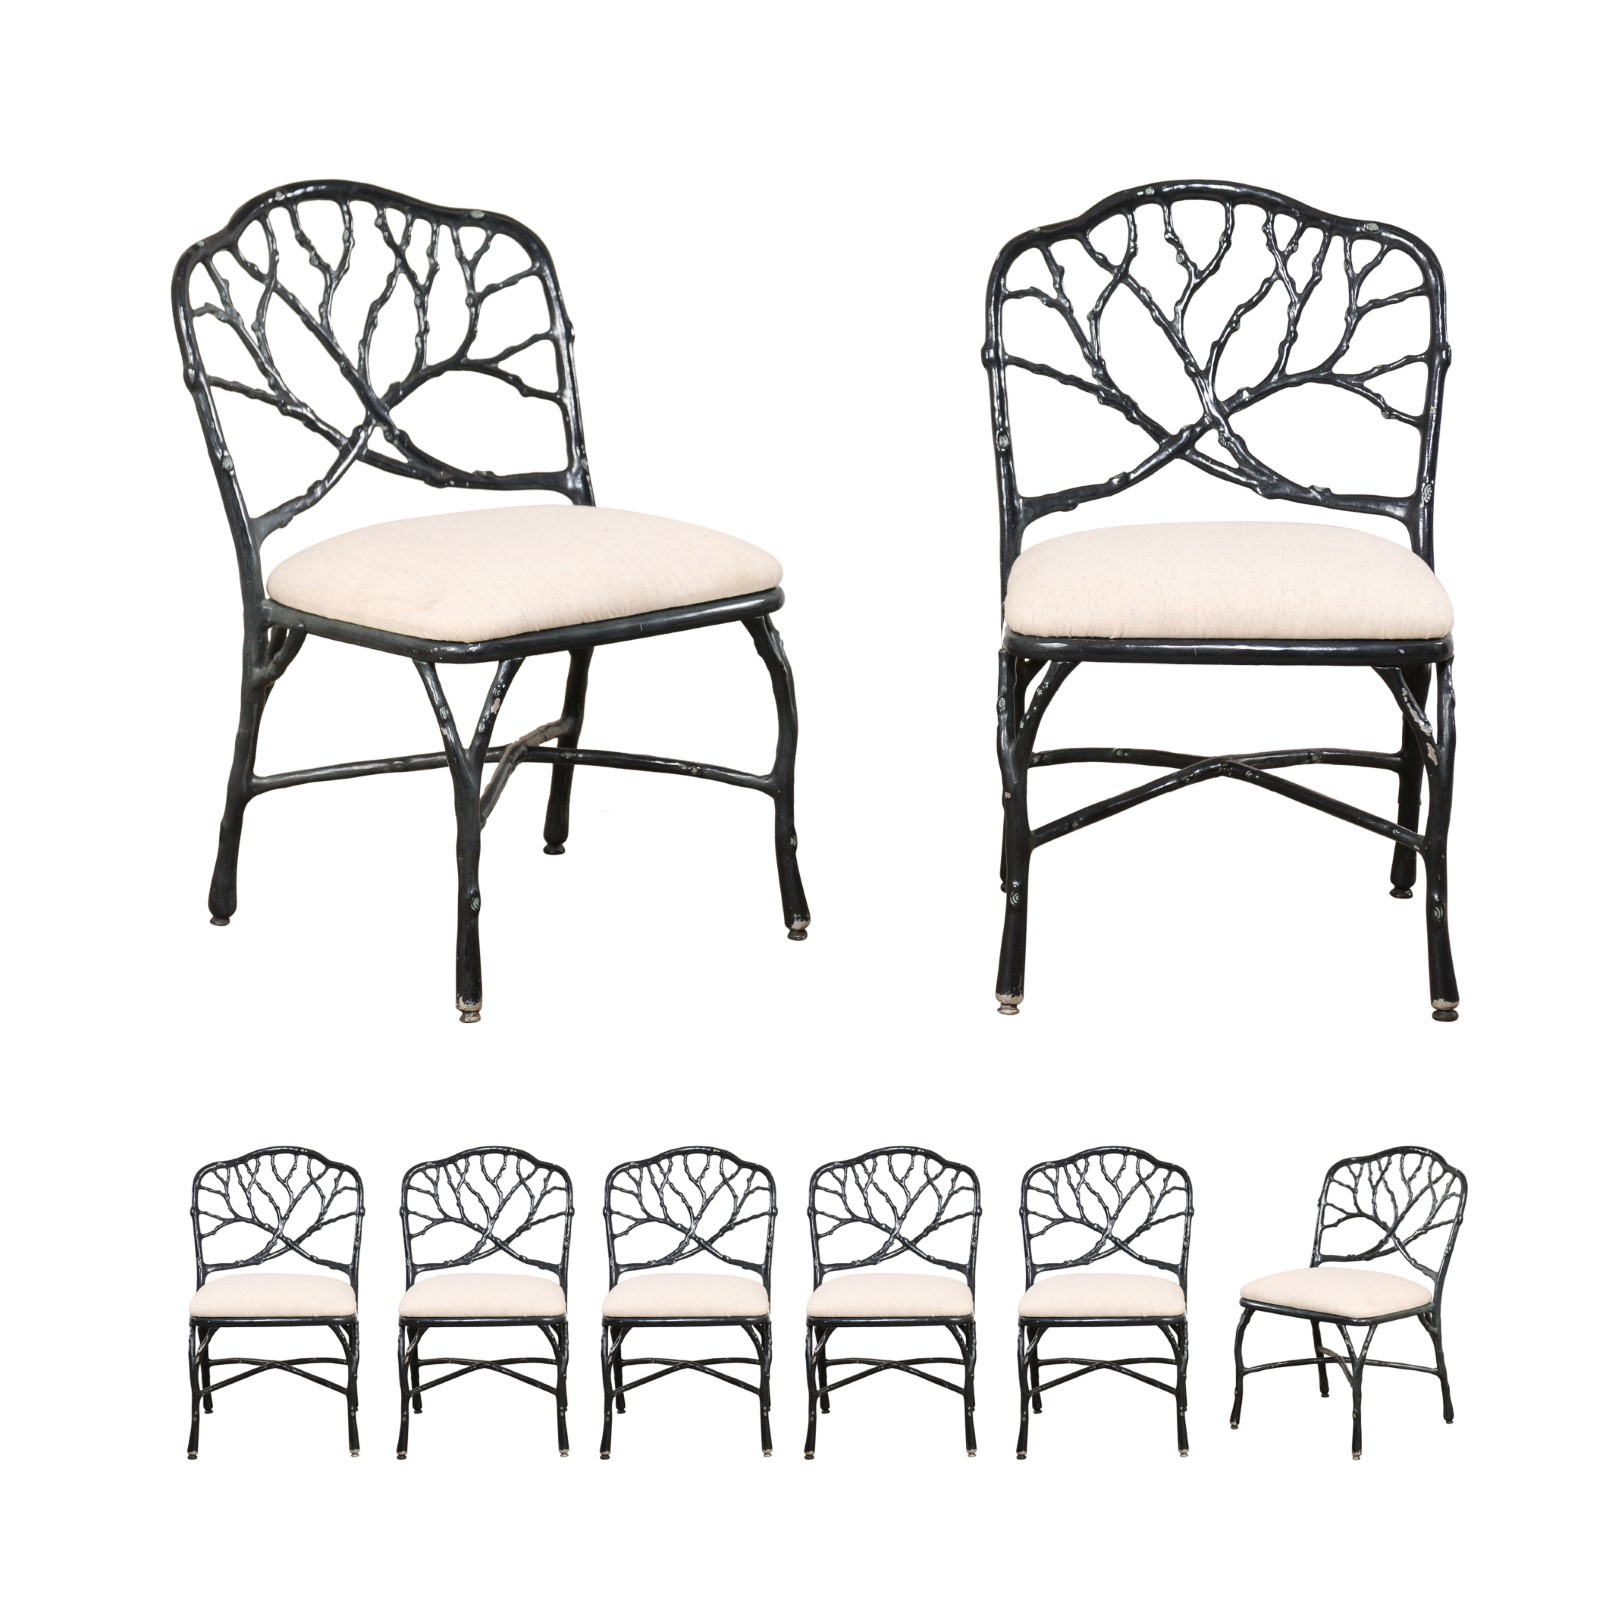 Twig & Branch Motif Patio Dining Chairs (8)